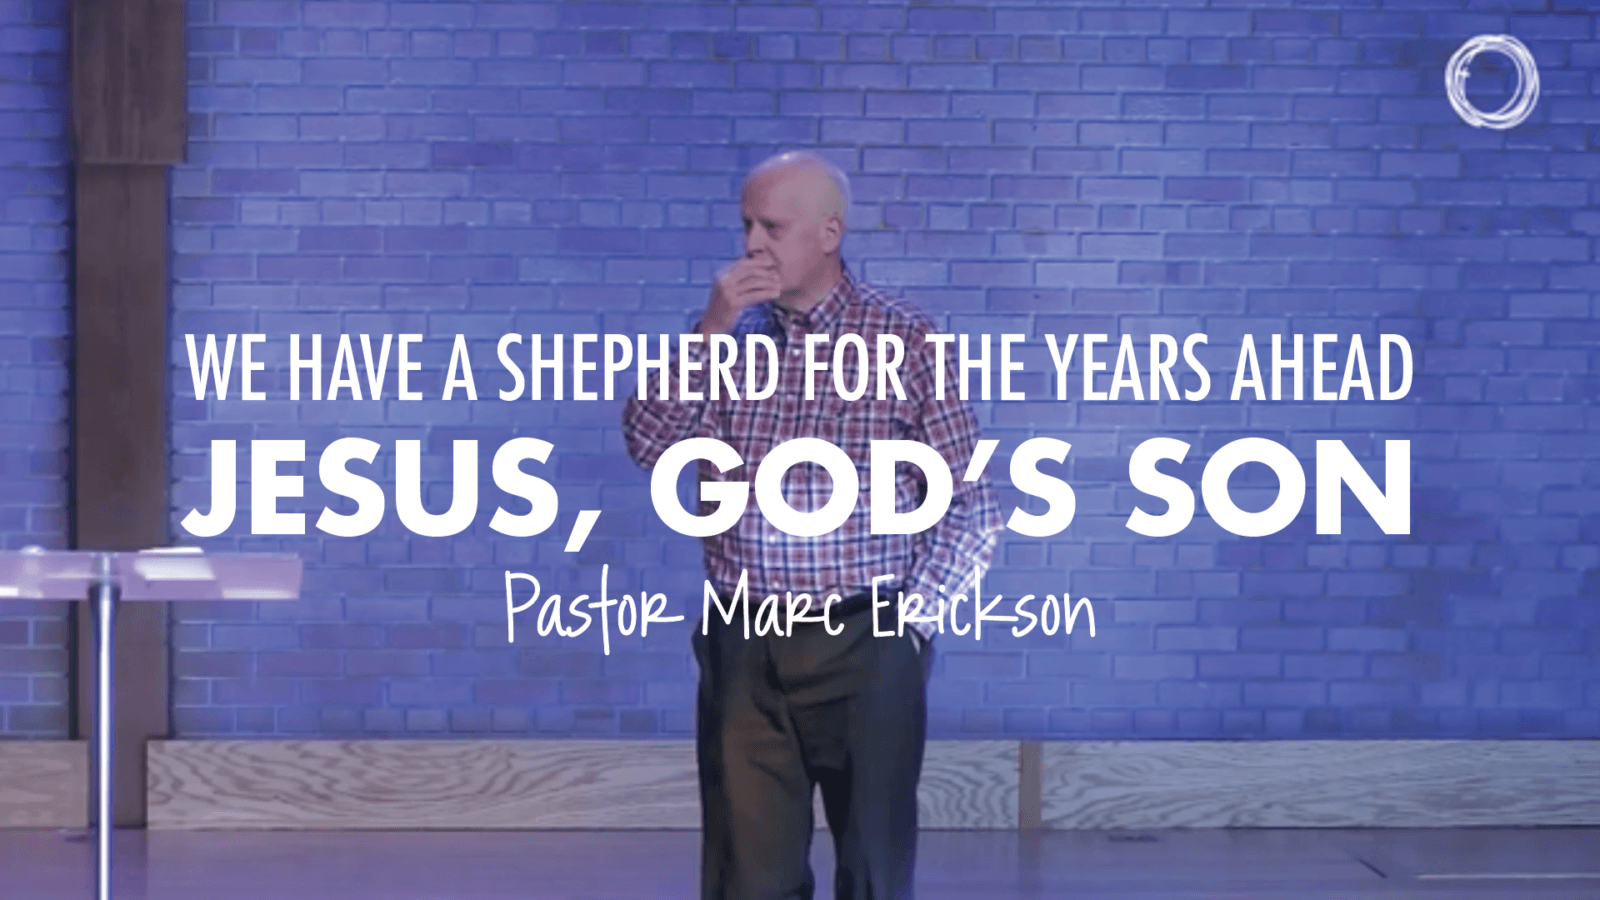 We Have a Shepherd for the Years Ahead! Jesus Christ, God's Son